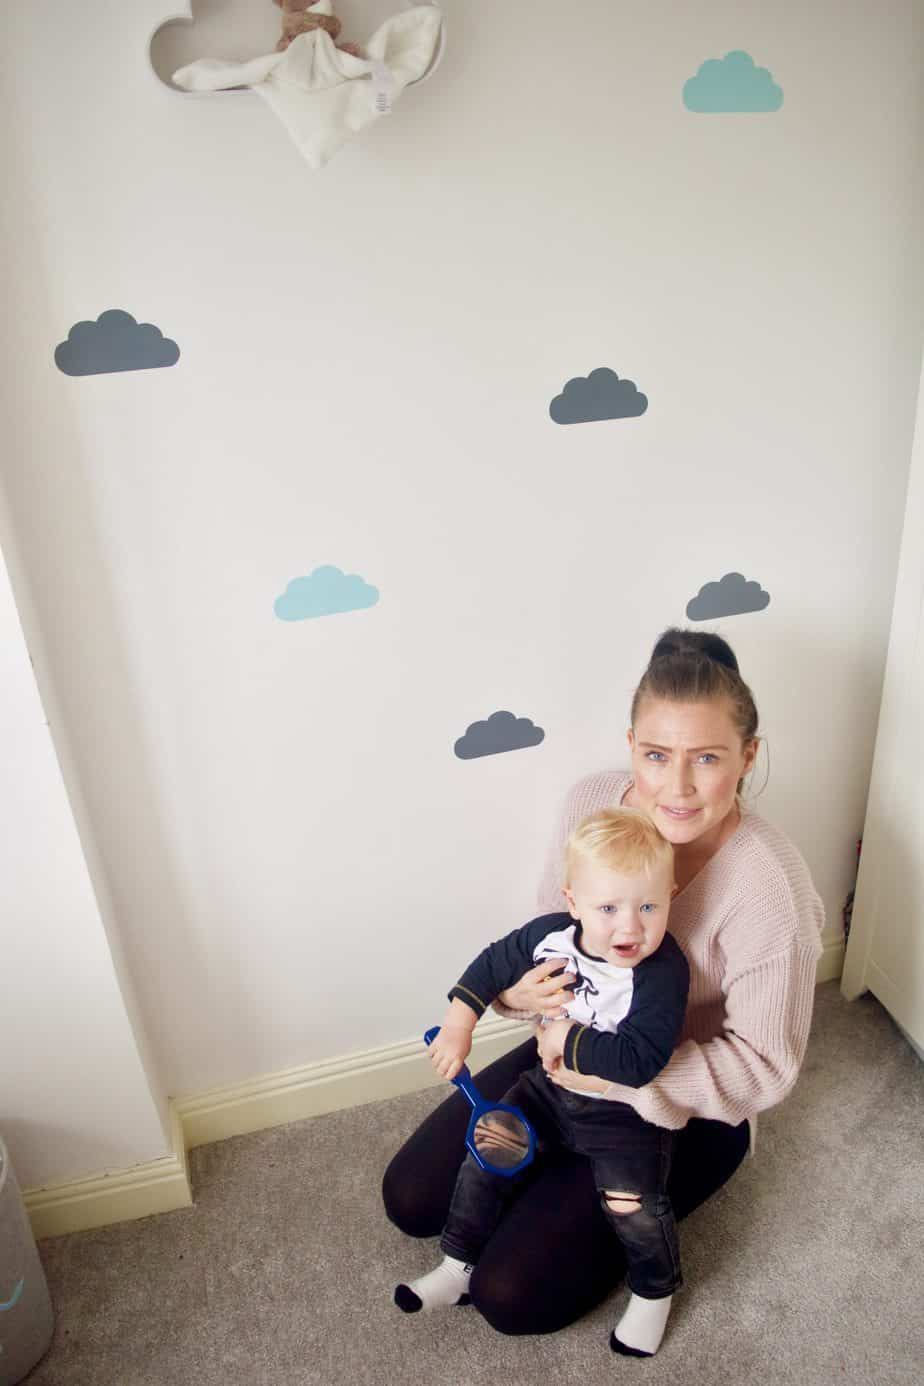 Me and Baby K sitting infront of one wall of cloud shaped stickers for his cloud themed bedroom